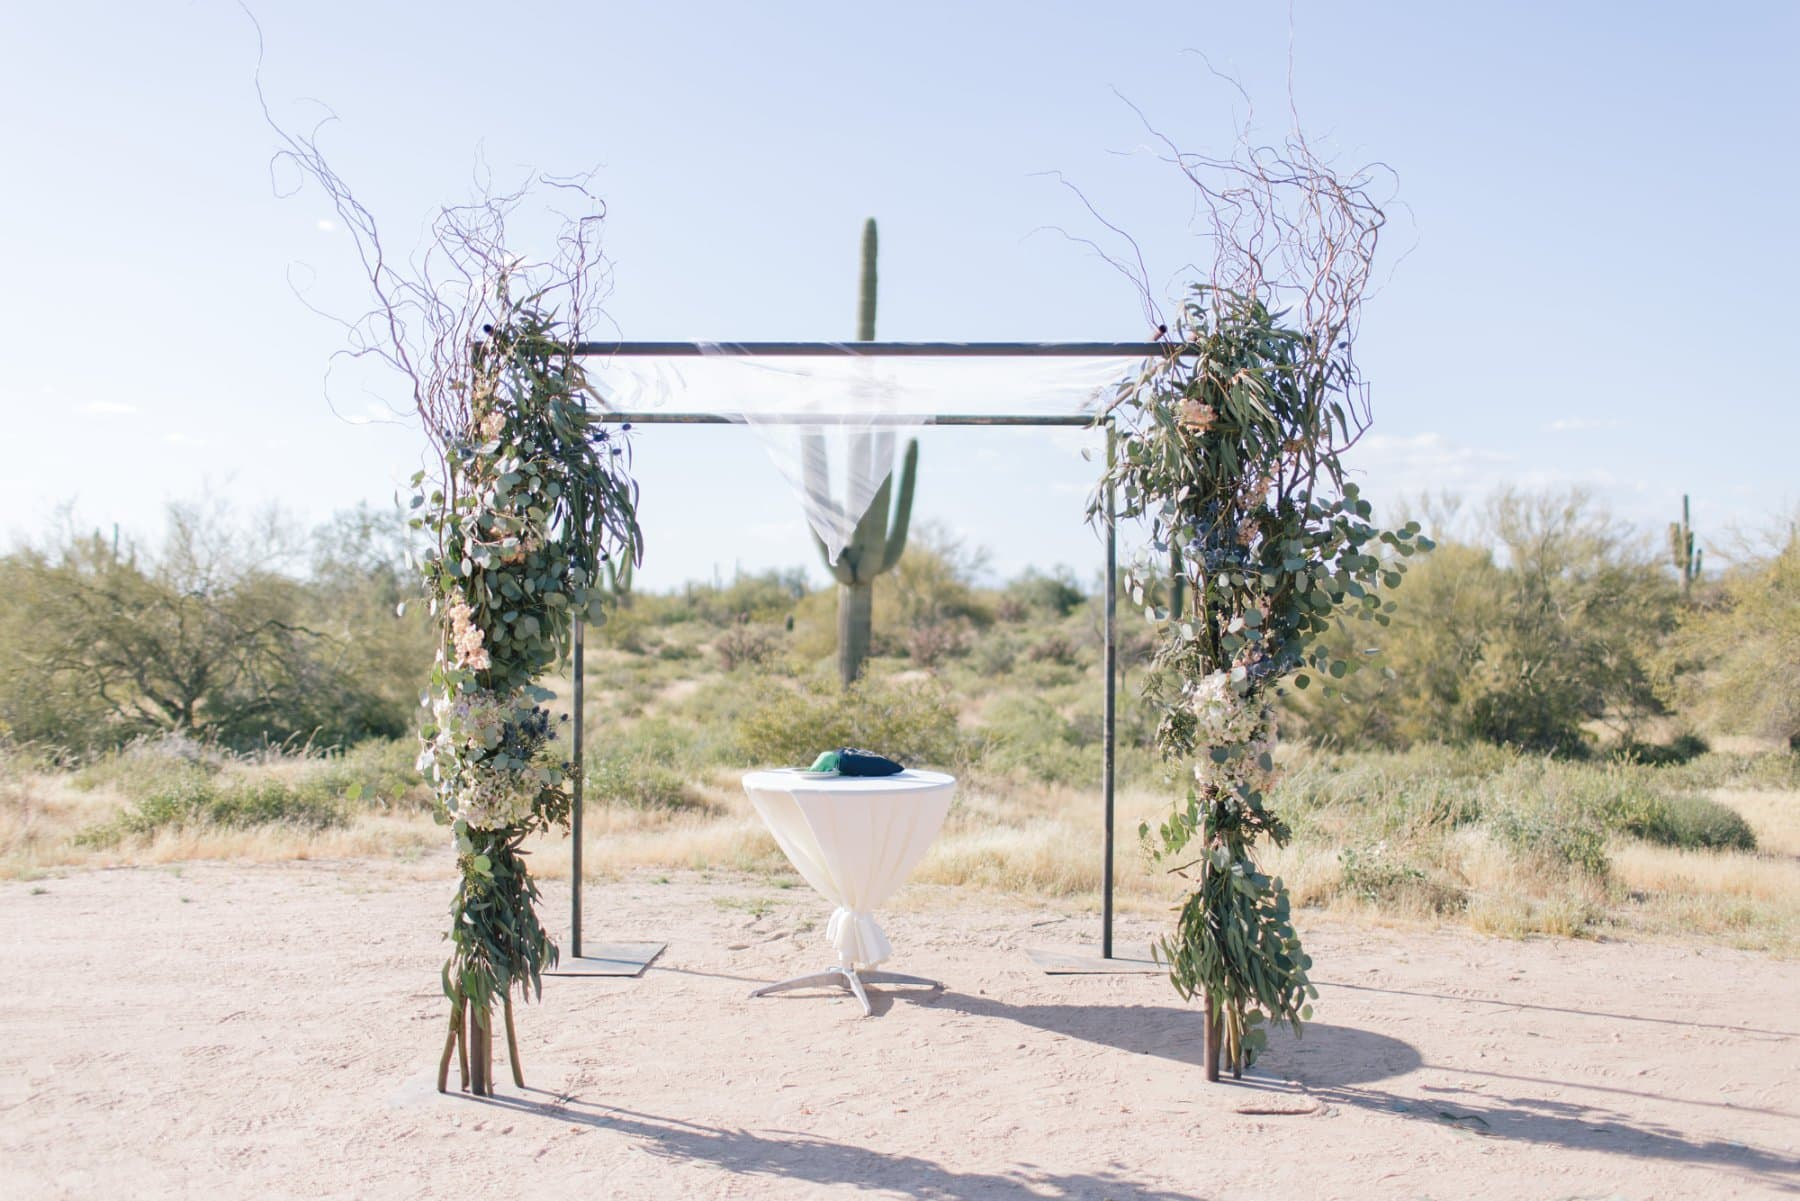 Desert Foothills Barn wedding outdoor desert wedding ceremony chuppah